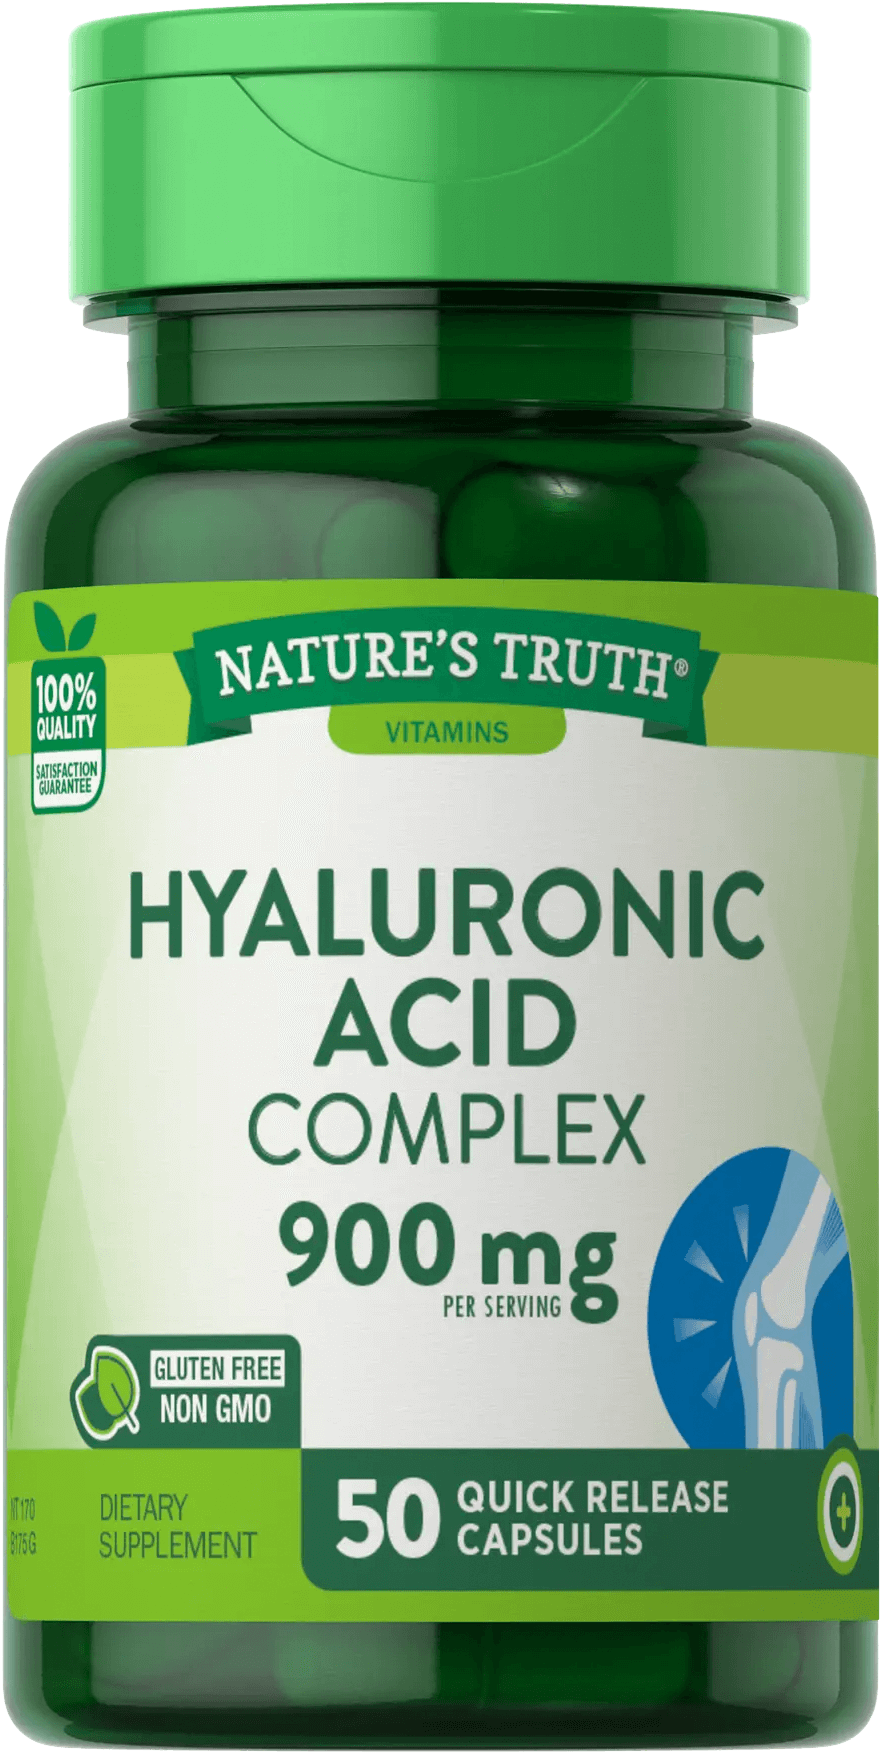 Hyaluronic Acid <br>Complex 900 mg